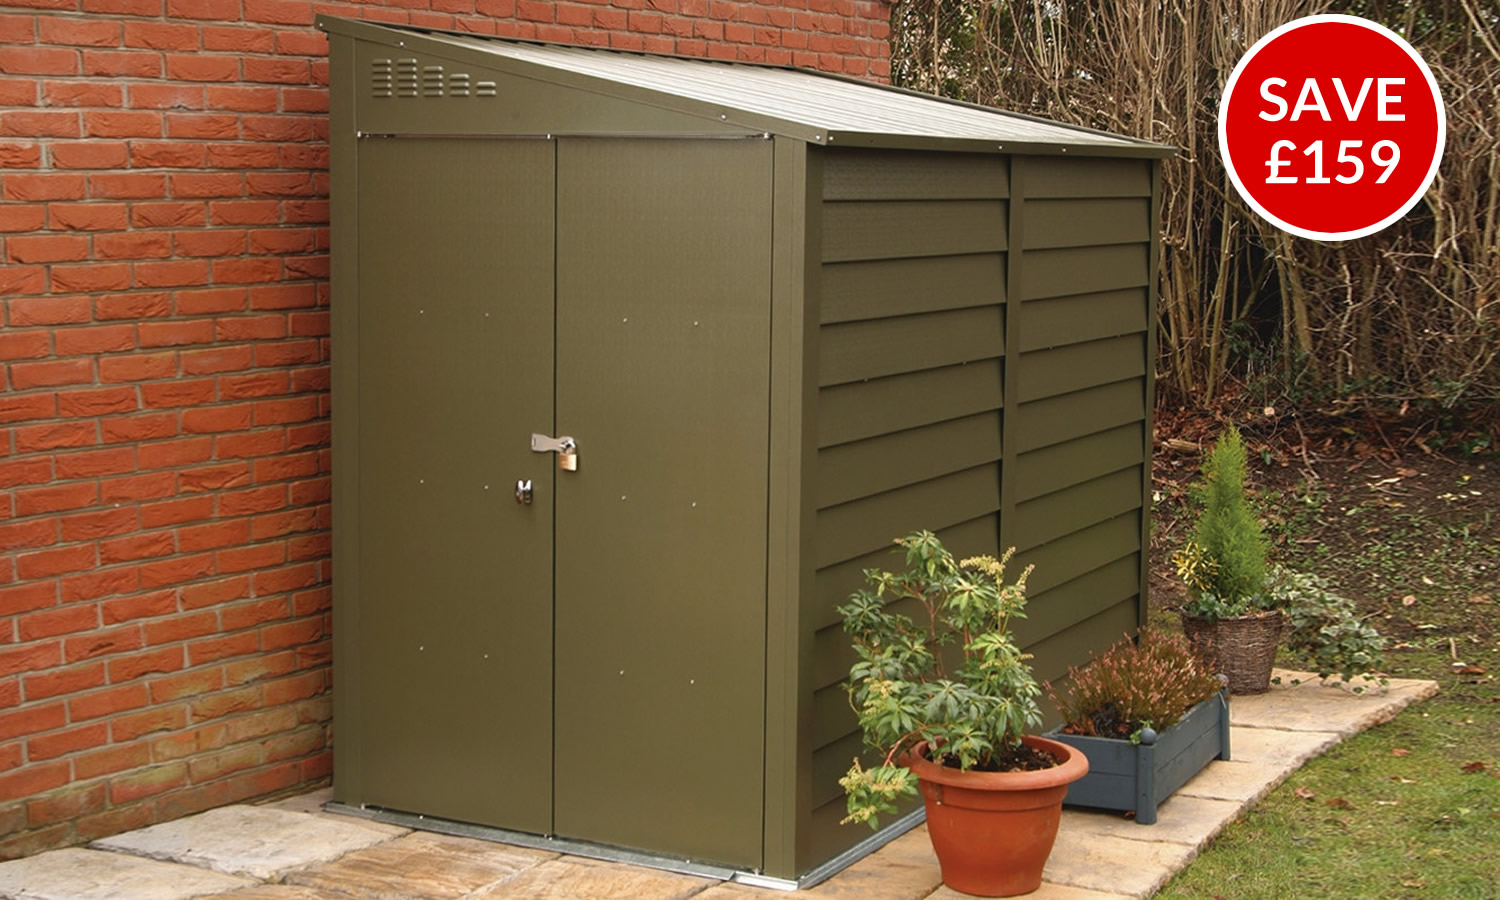 Titan 940 green shed special offer from Trimetals